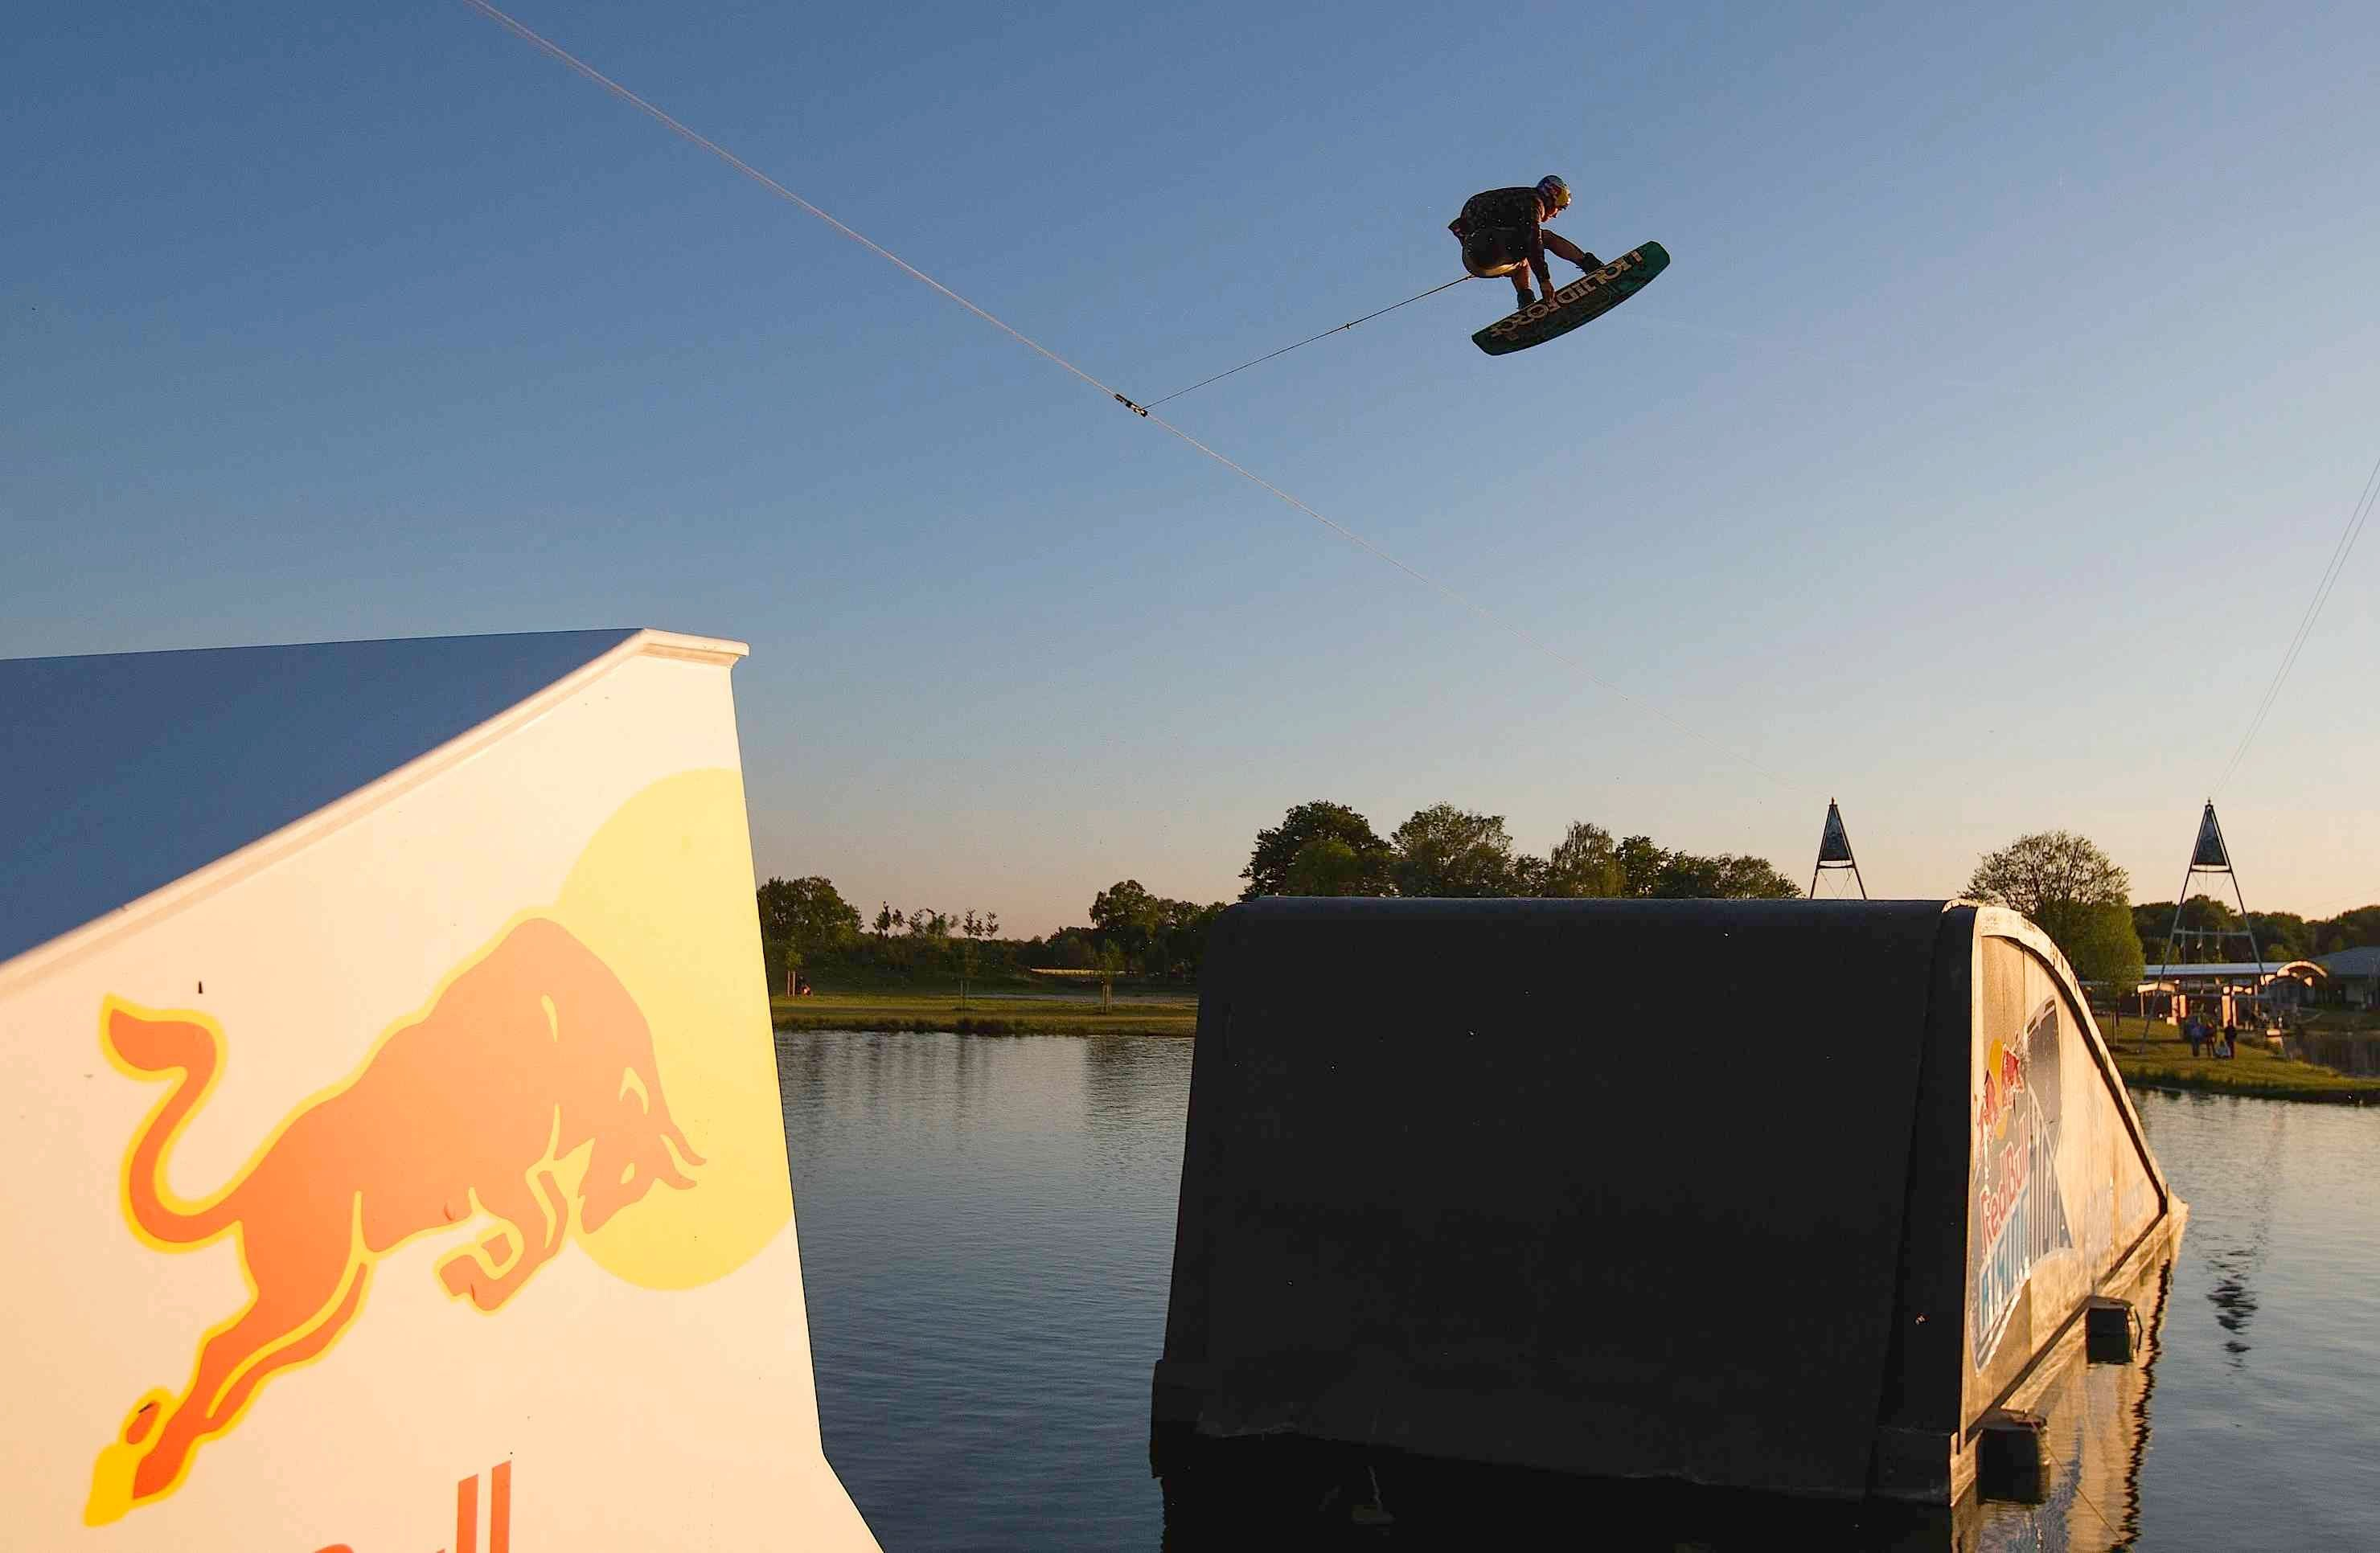 Get Inspired With Red Bull Rising High!